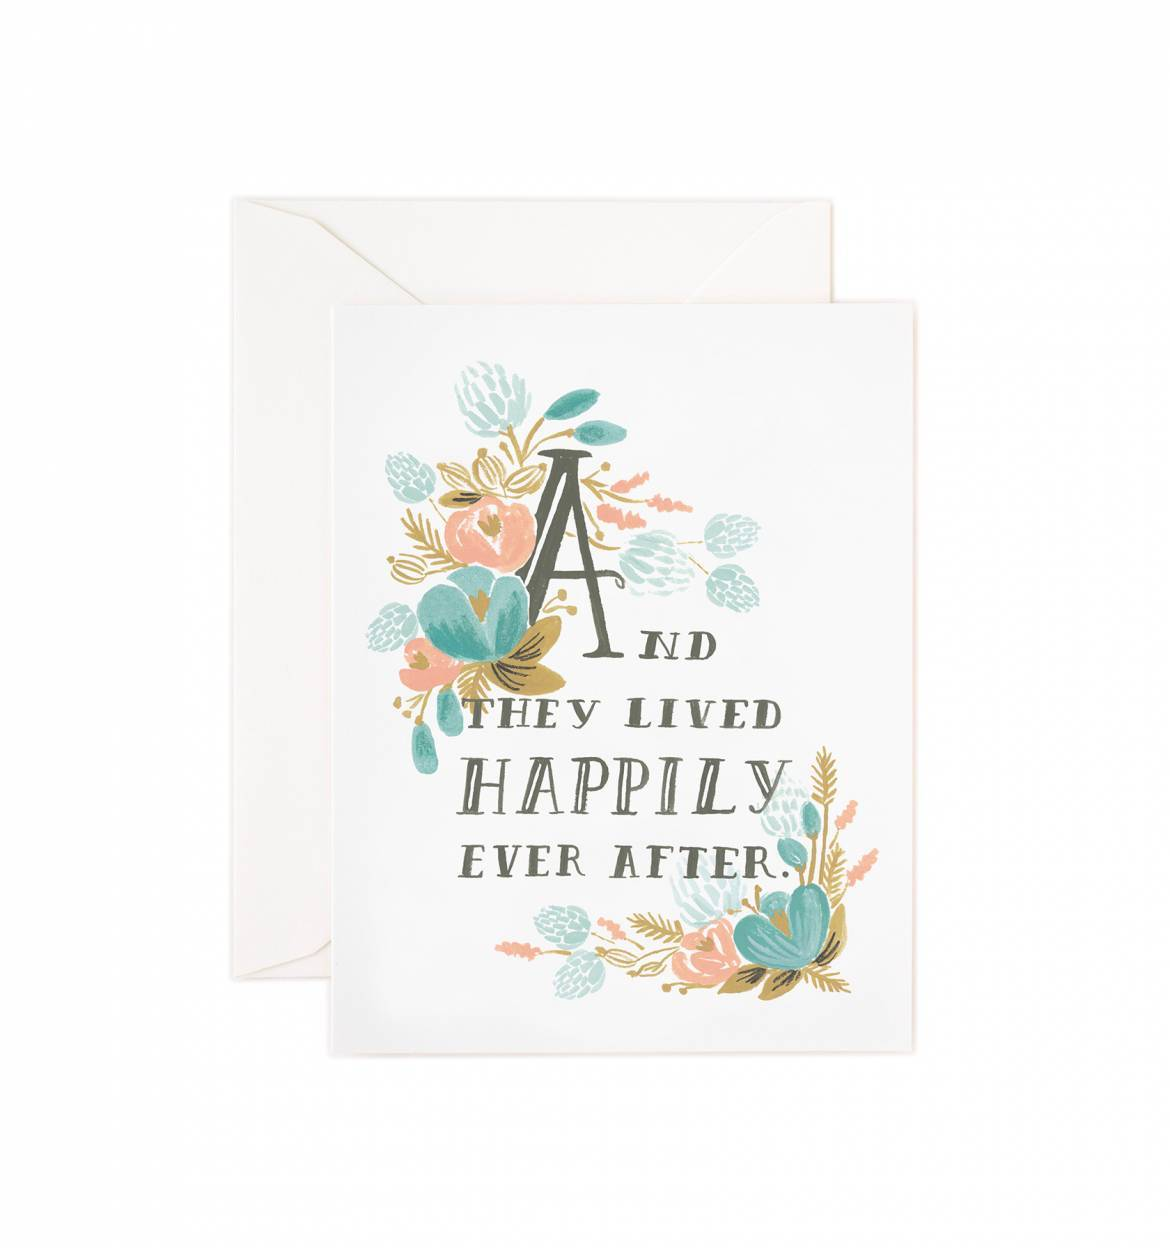 Happily Ever After Card - Heart of the Home PA